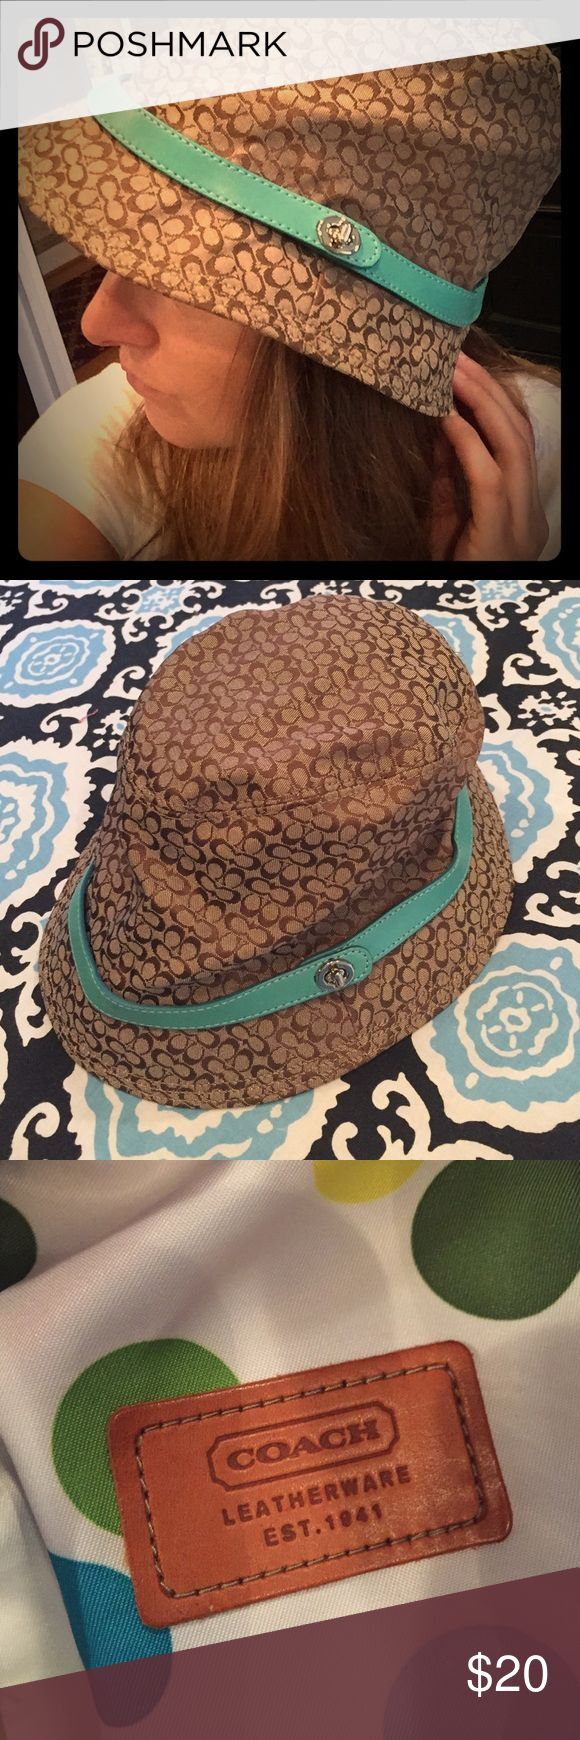 Coach Hat with Turquoise Band Coach Hat with Turquoise Band Coach Accessories Hats